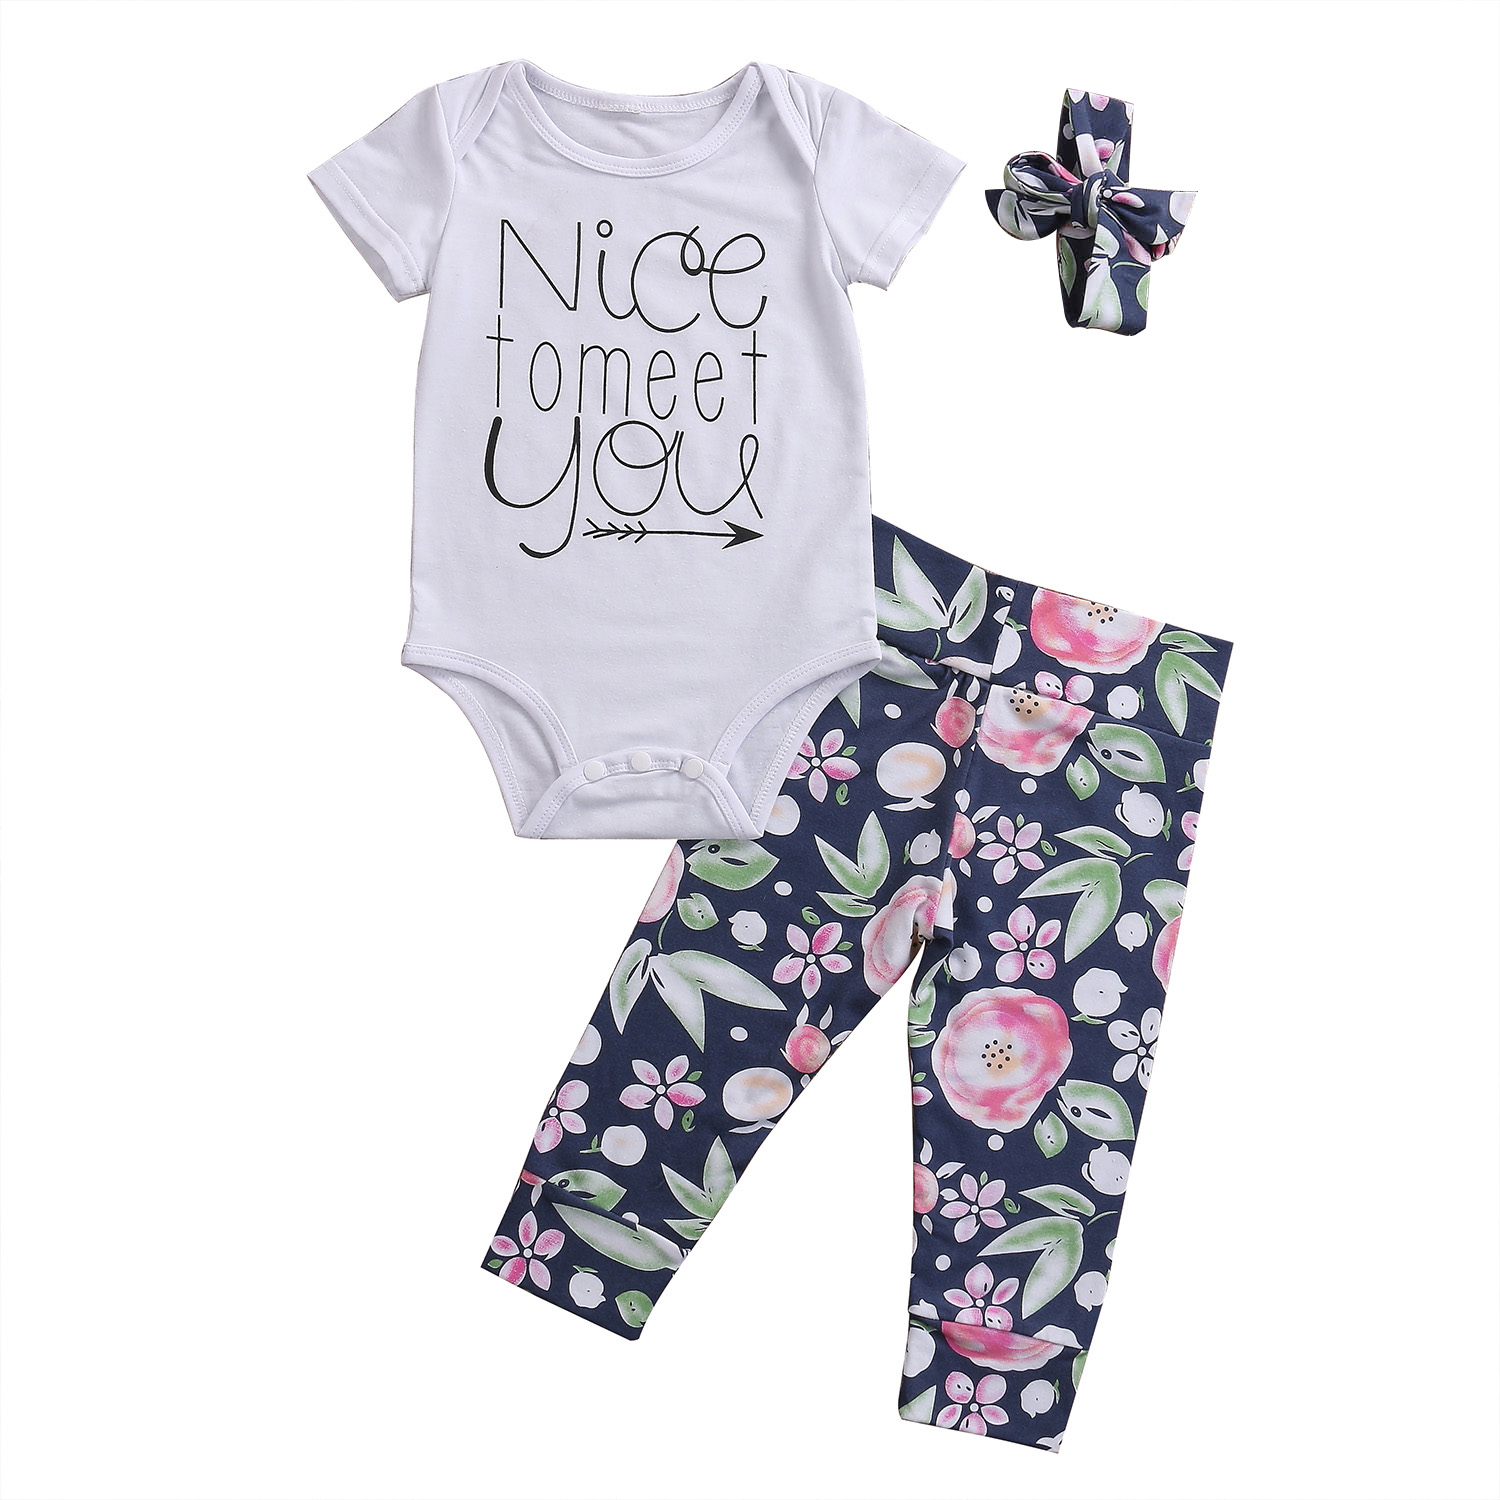 New Style Cute Newborn Toddler Baby Girls Clothes Summer Short Sleeve Romper Outfits Tops Floral long Pants Baby Clothing Set